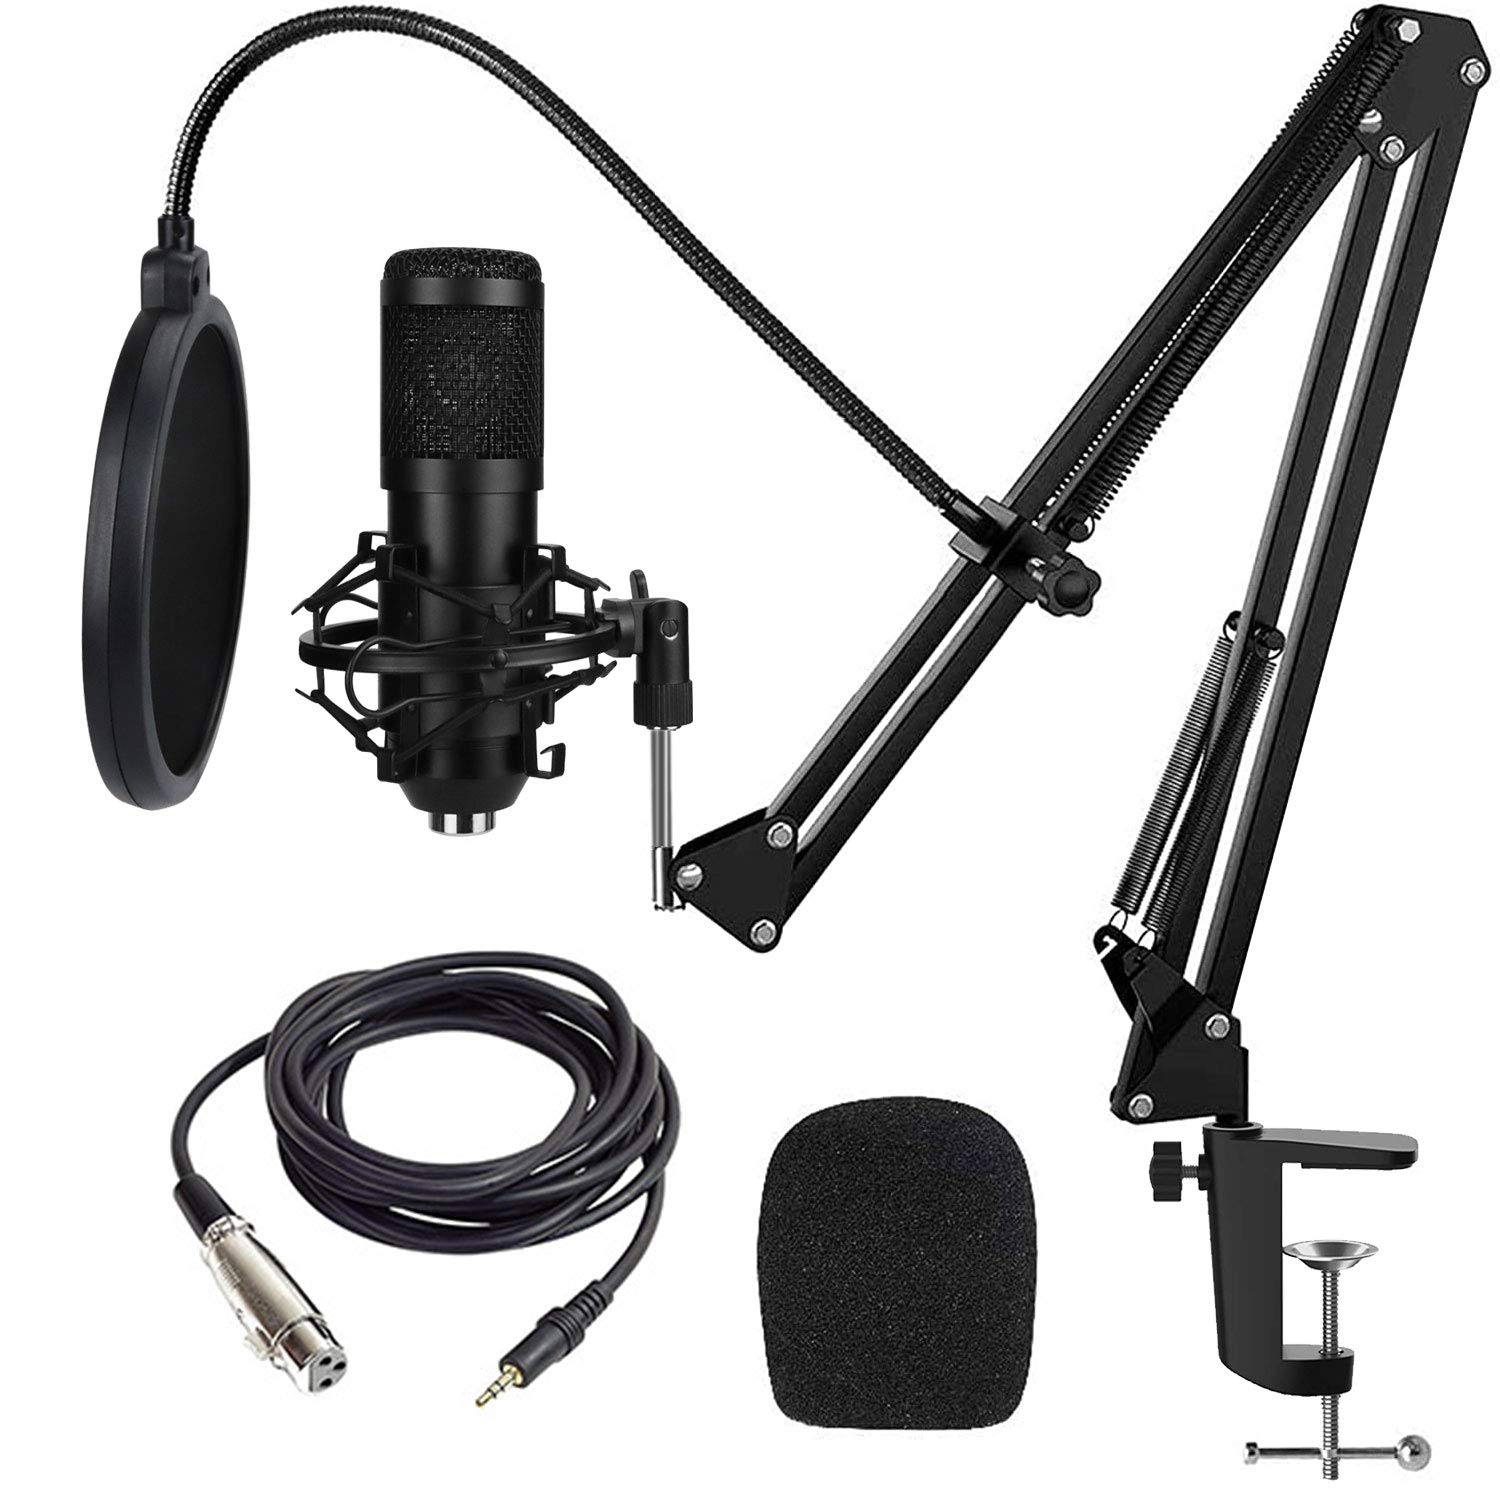 Condenser Microphone,Tuokeogo 192KHZ/24Bit Plug & Play PC Streaming Mic, BM-800 USB Microphone Kit with Professional Sound Chipset Boom Arm Set for Recording YouTube Karaoke Gaming Podcasting etc